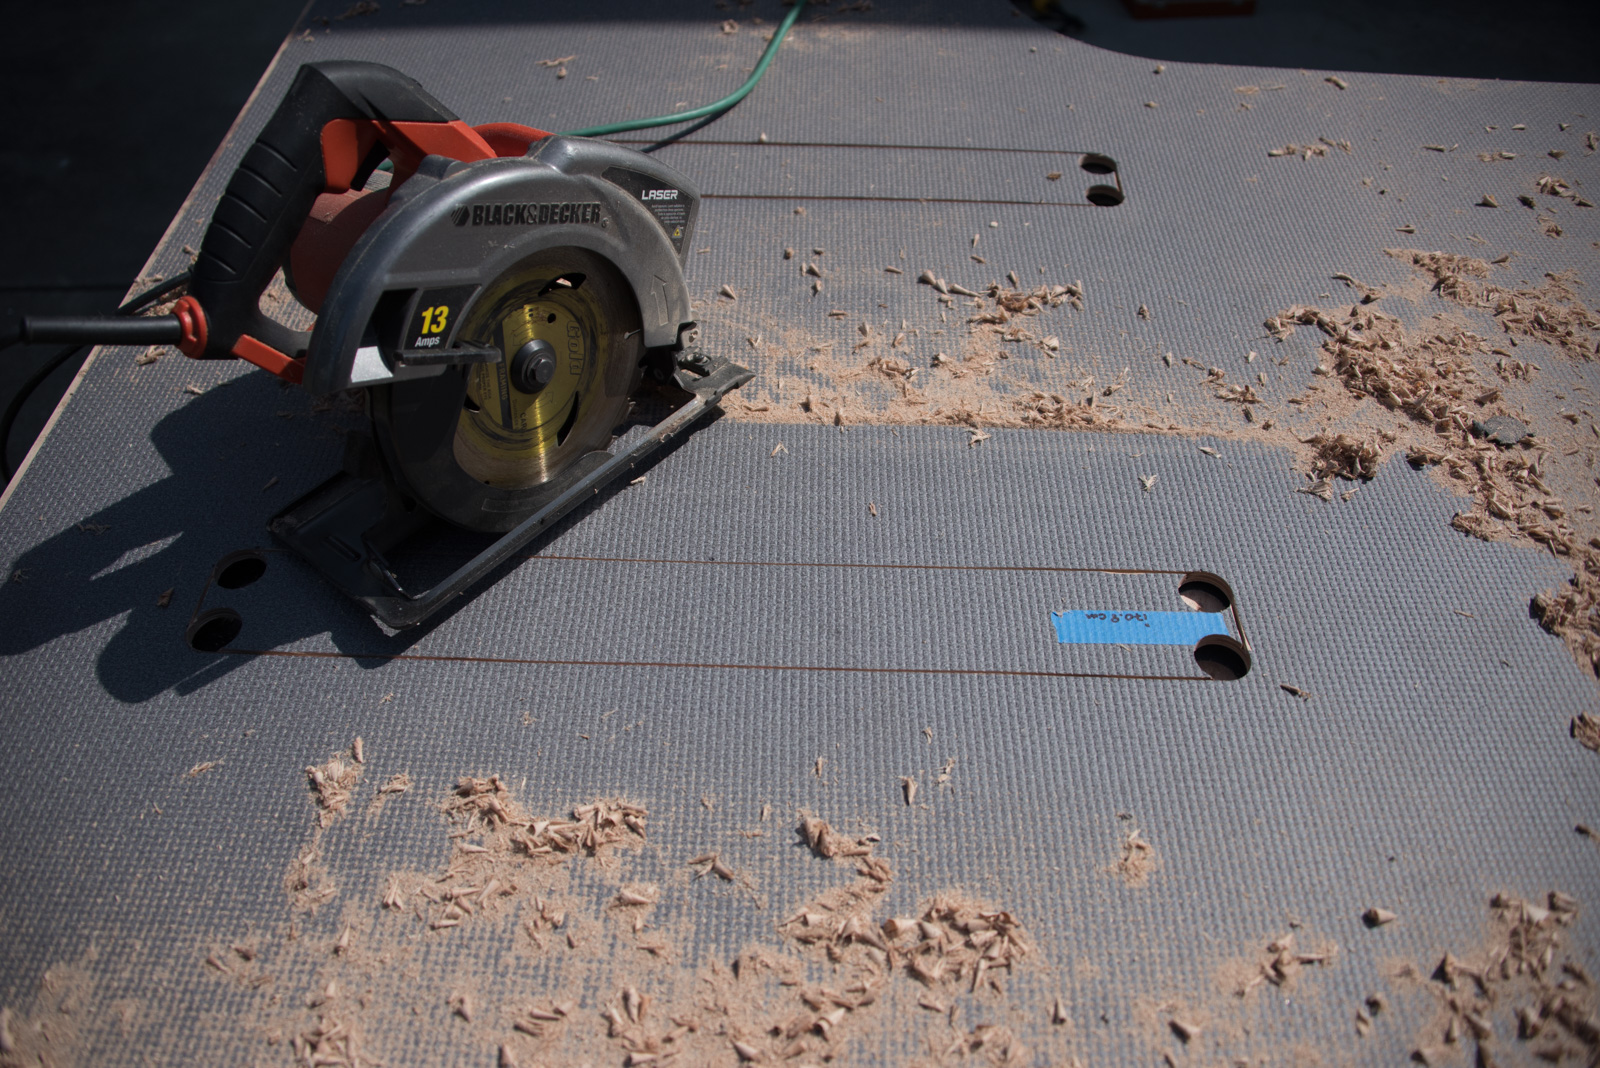 Plunge cuts with a circular saw to join-the-dots between the corner holes